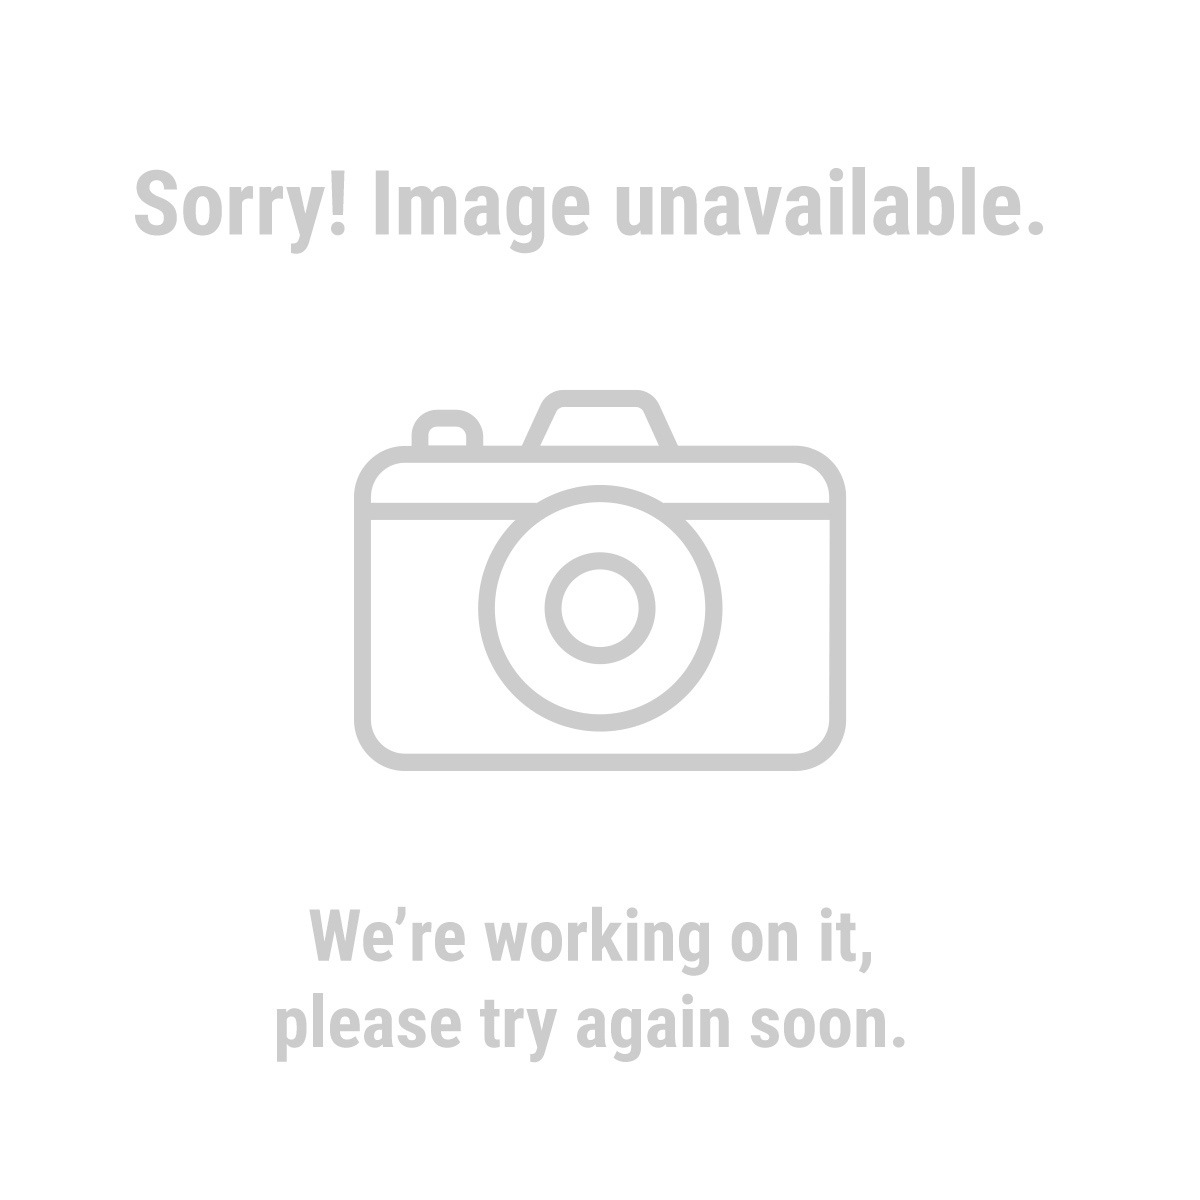 Central Pneumatic 61936 25 ft. x 3/8 in. Heavy Duty Premium Rubber Air Hose